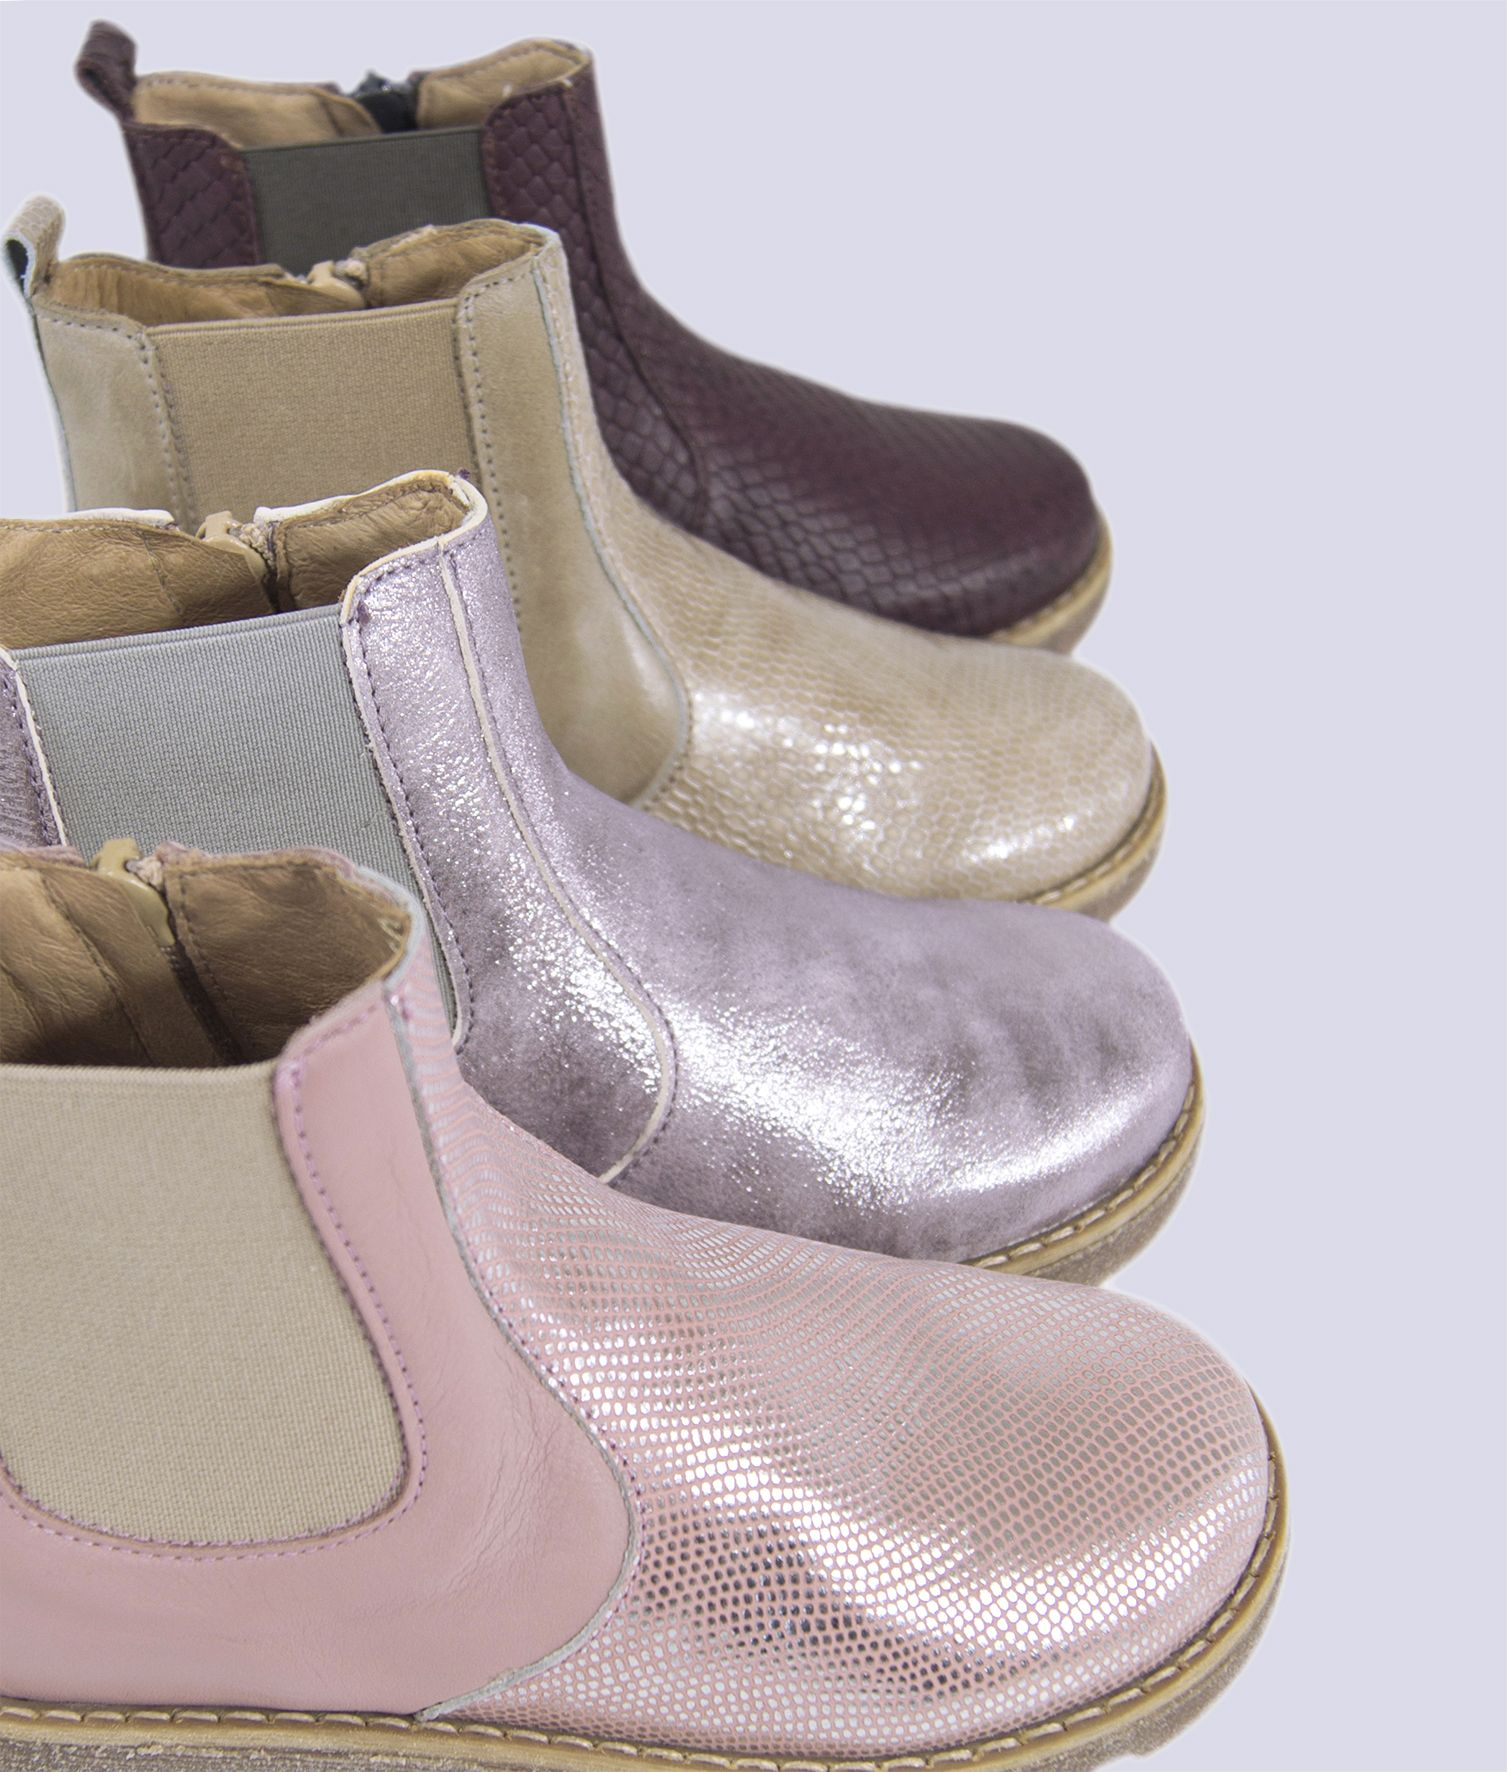 boots in chelsea fantastic 2016 MOVE colors SpringSummer new MSUpqzV